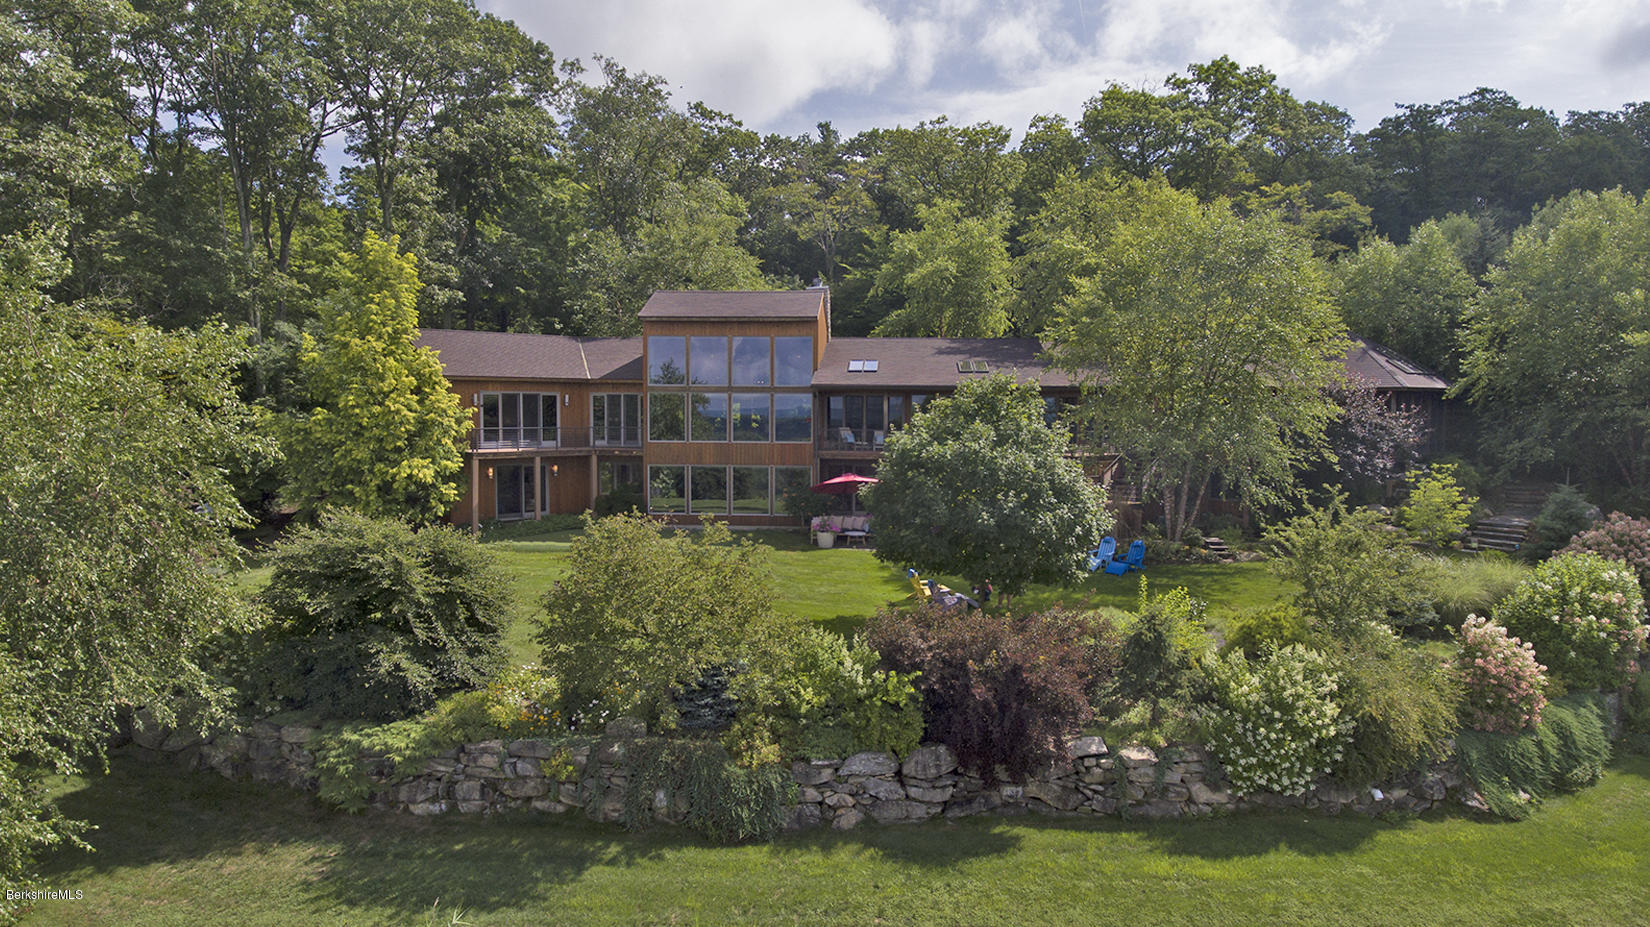 179 Mt Hunger, Monterey, Massachusetts 01245, 5 Bedrooms Bedrooms, 10 Rooms Rooms,8 BathroomsBathrooms,Residential,For Sale,Mt Hunger,231972